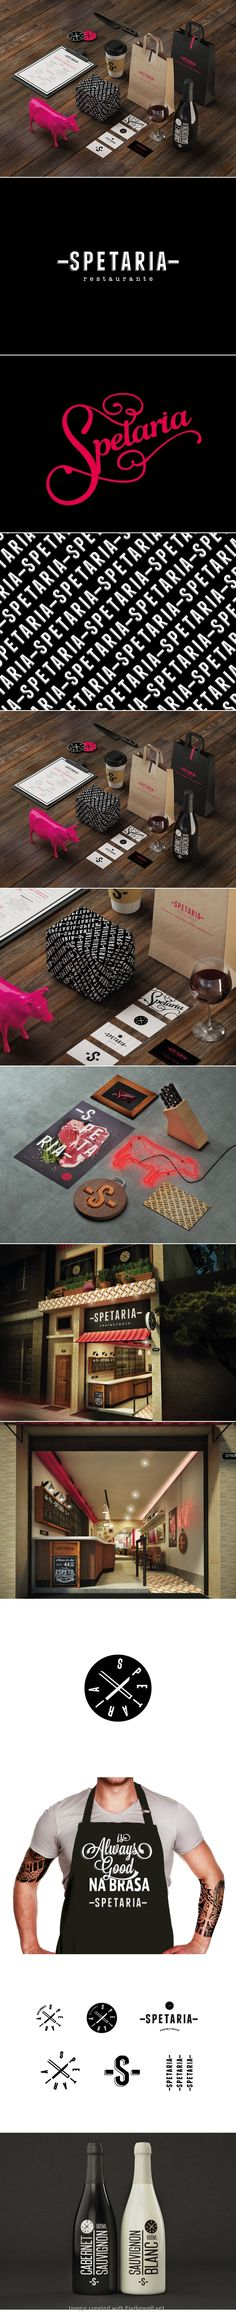 Spetaria great #identity #packaging #branding PD